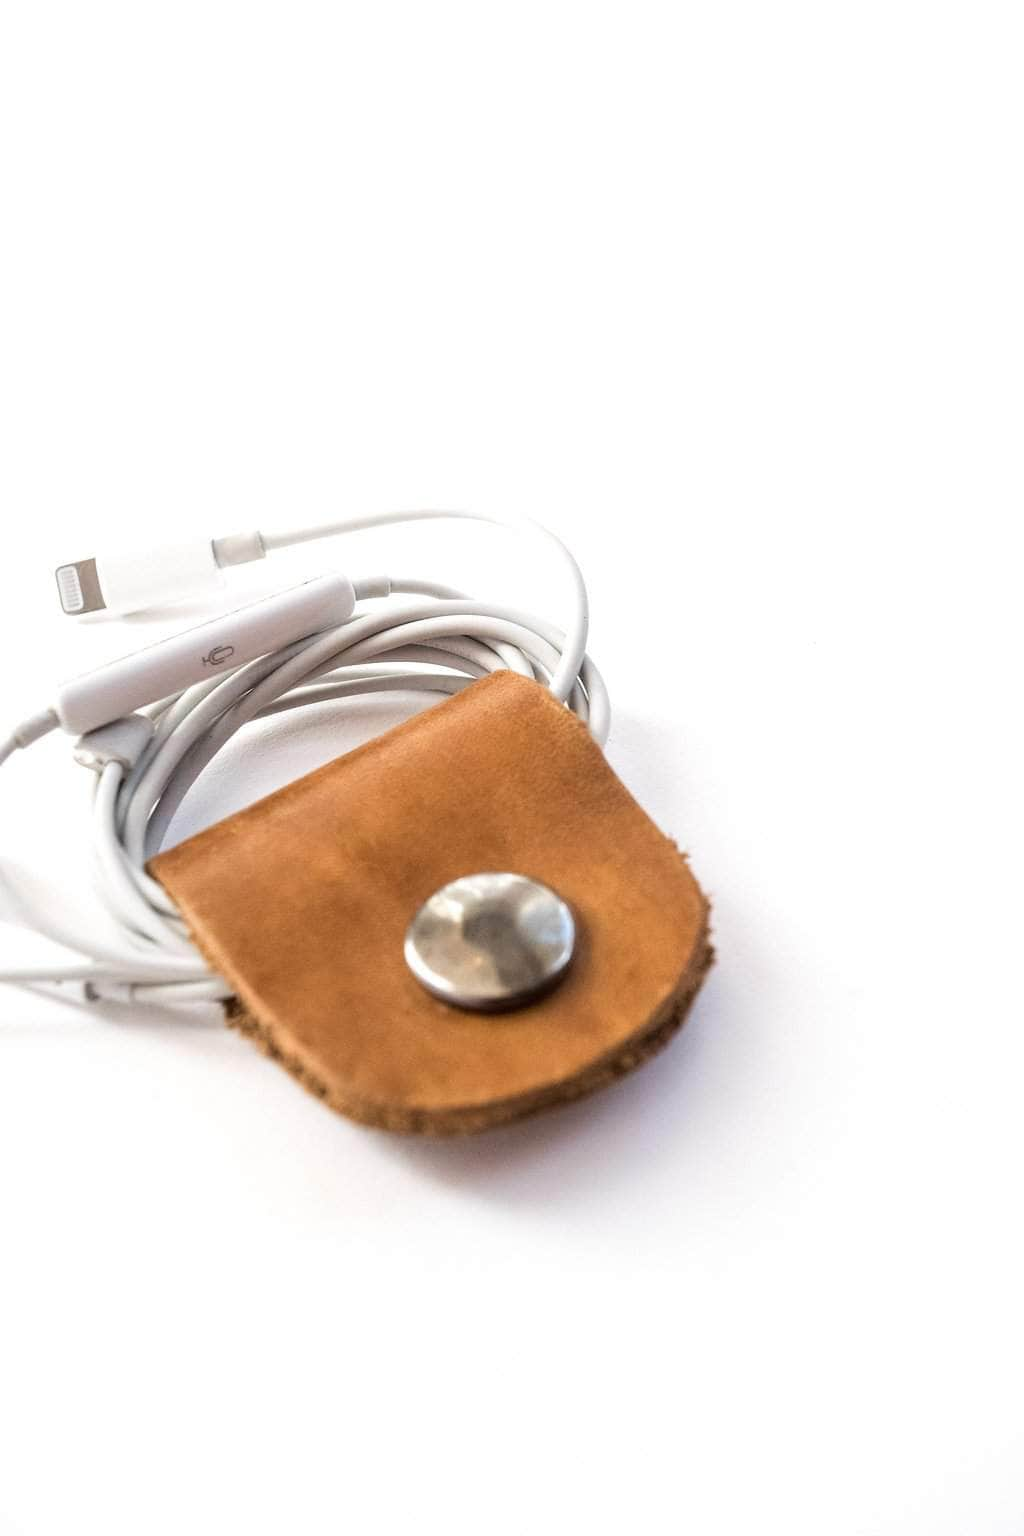 Gambella Leather Headphone Holder - UnoEth